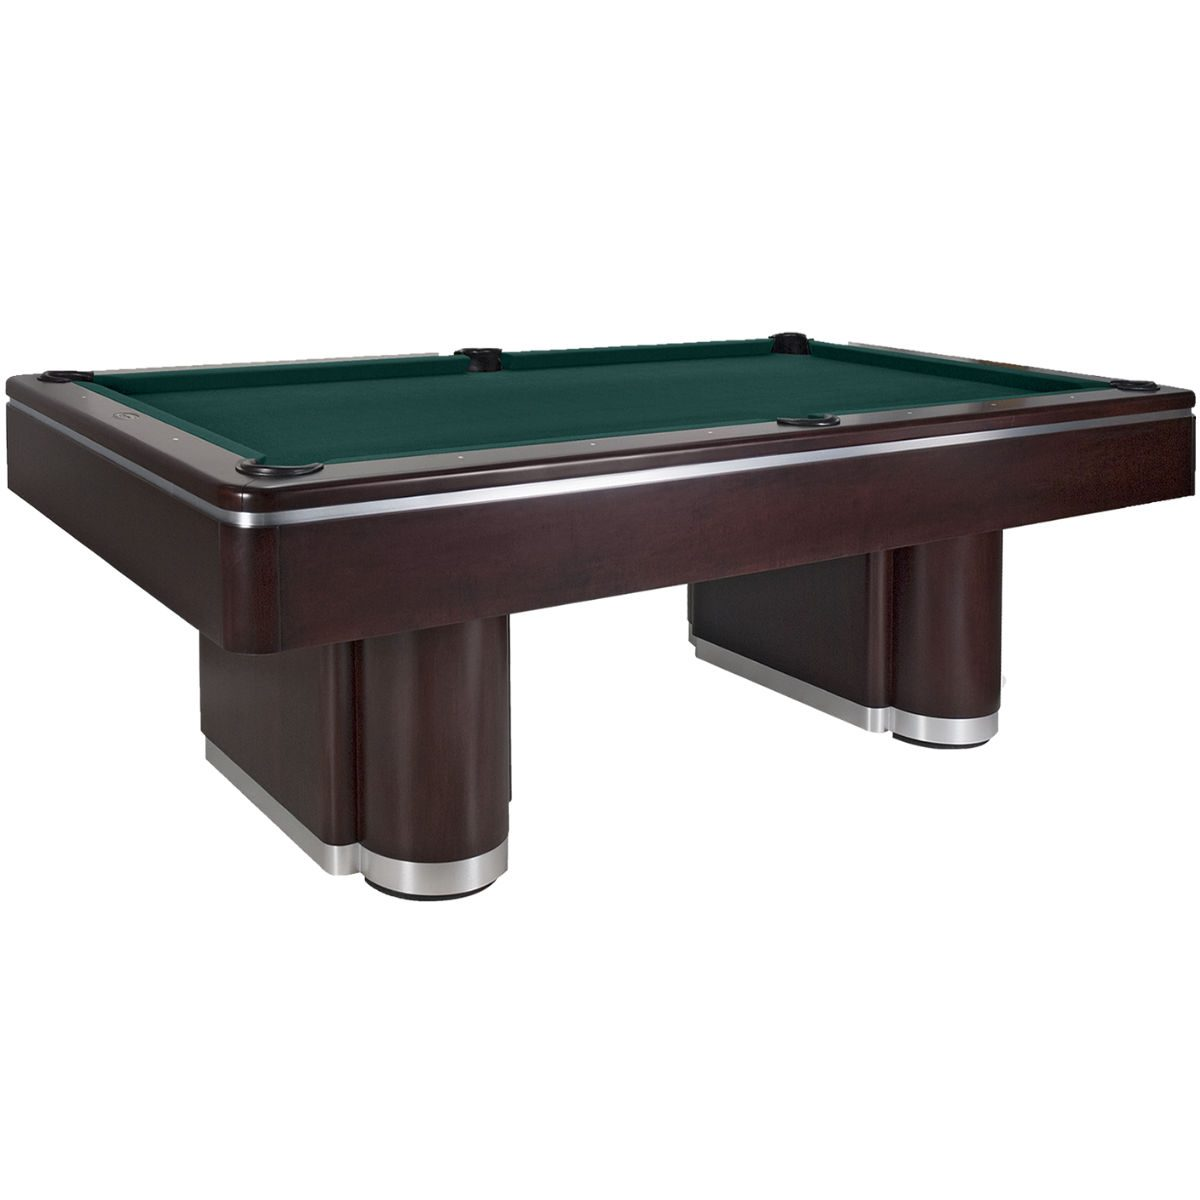 Olhausen Pool Tables Near Montgomeryville PA Shop Today - Olhausen madison pool table